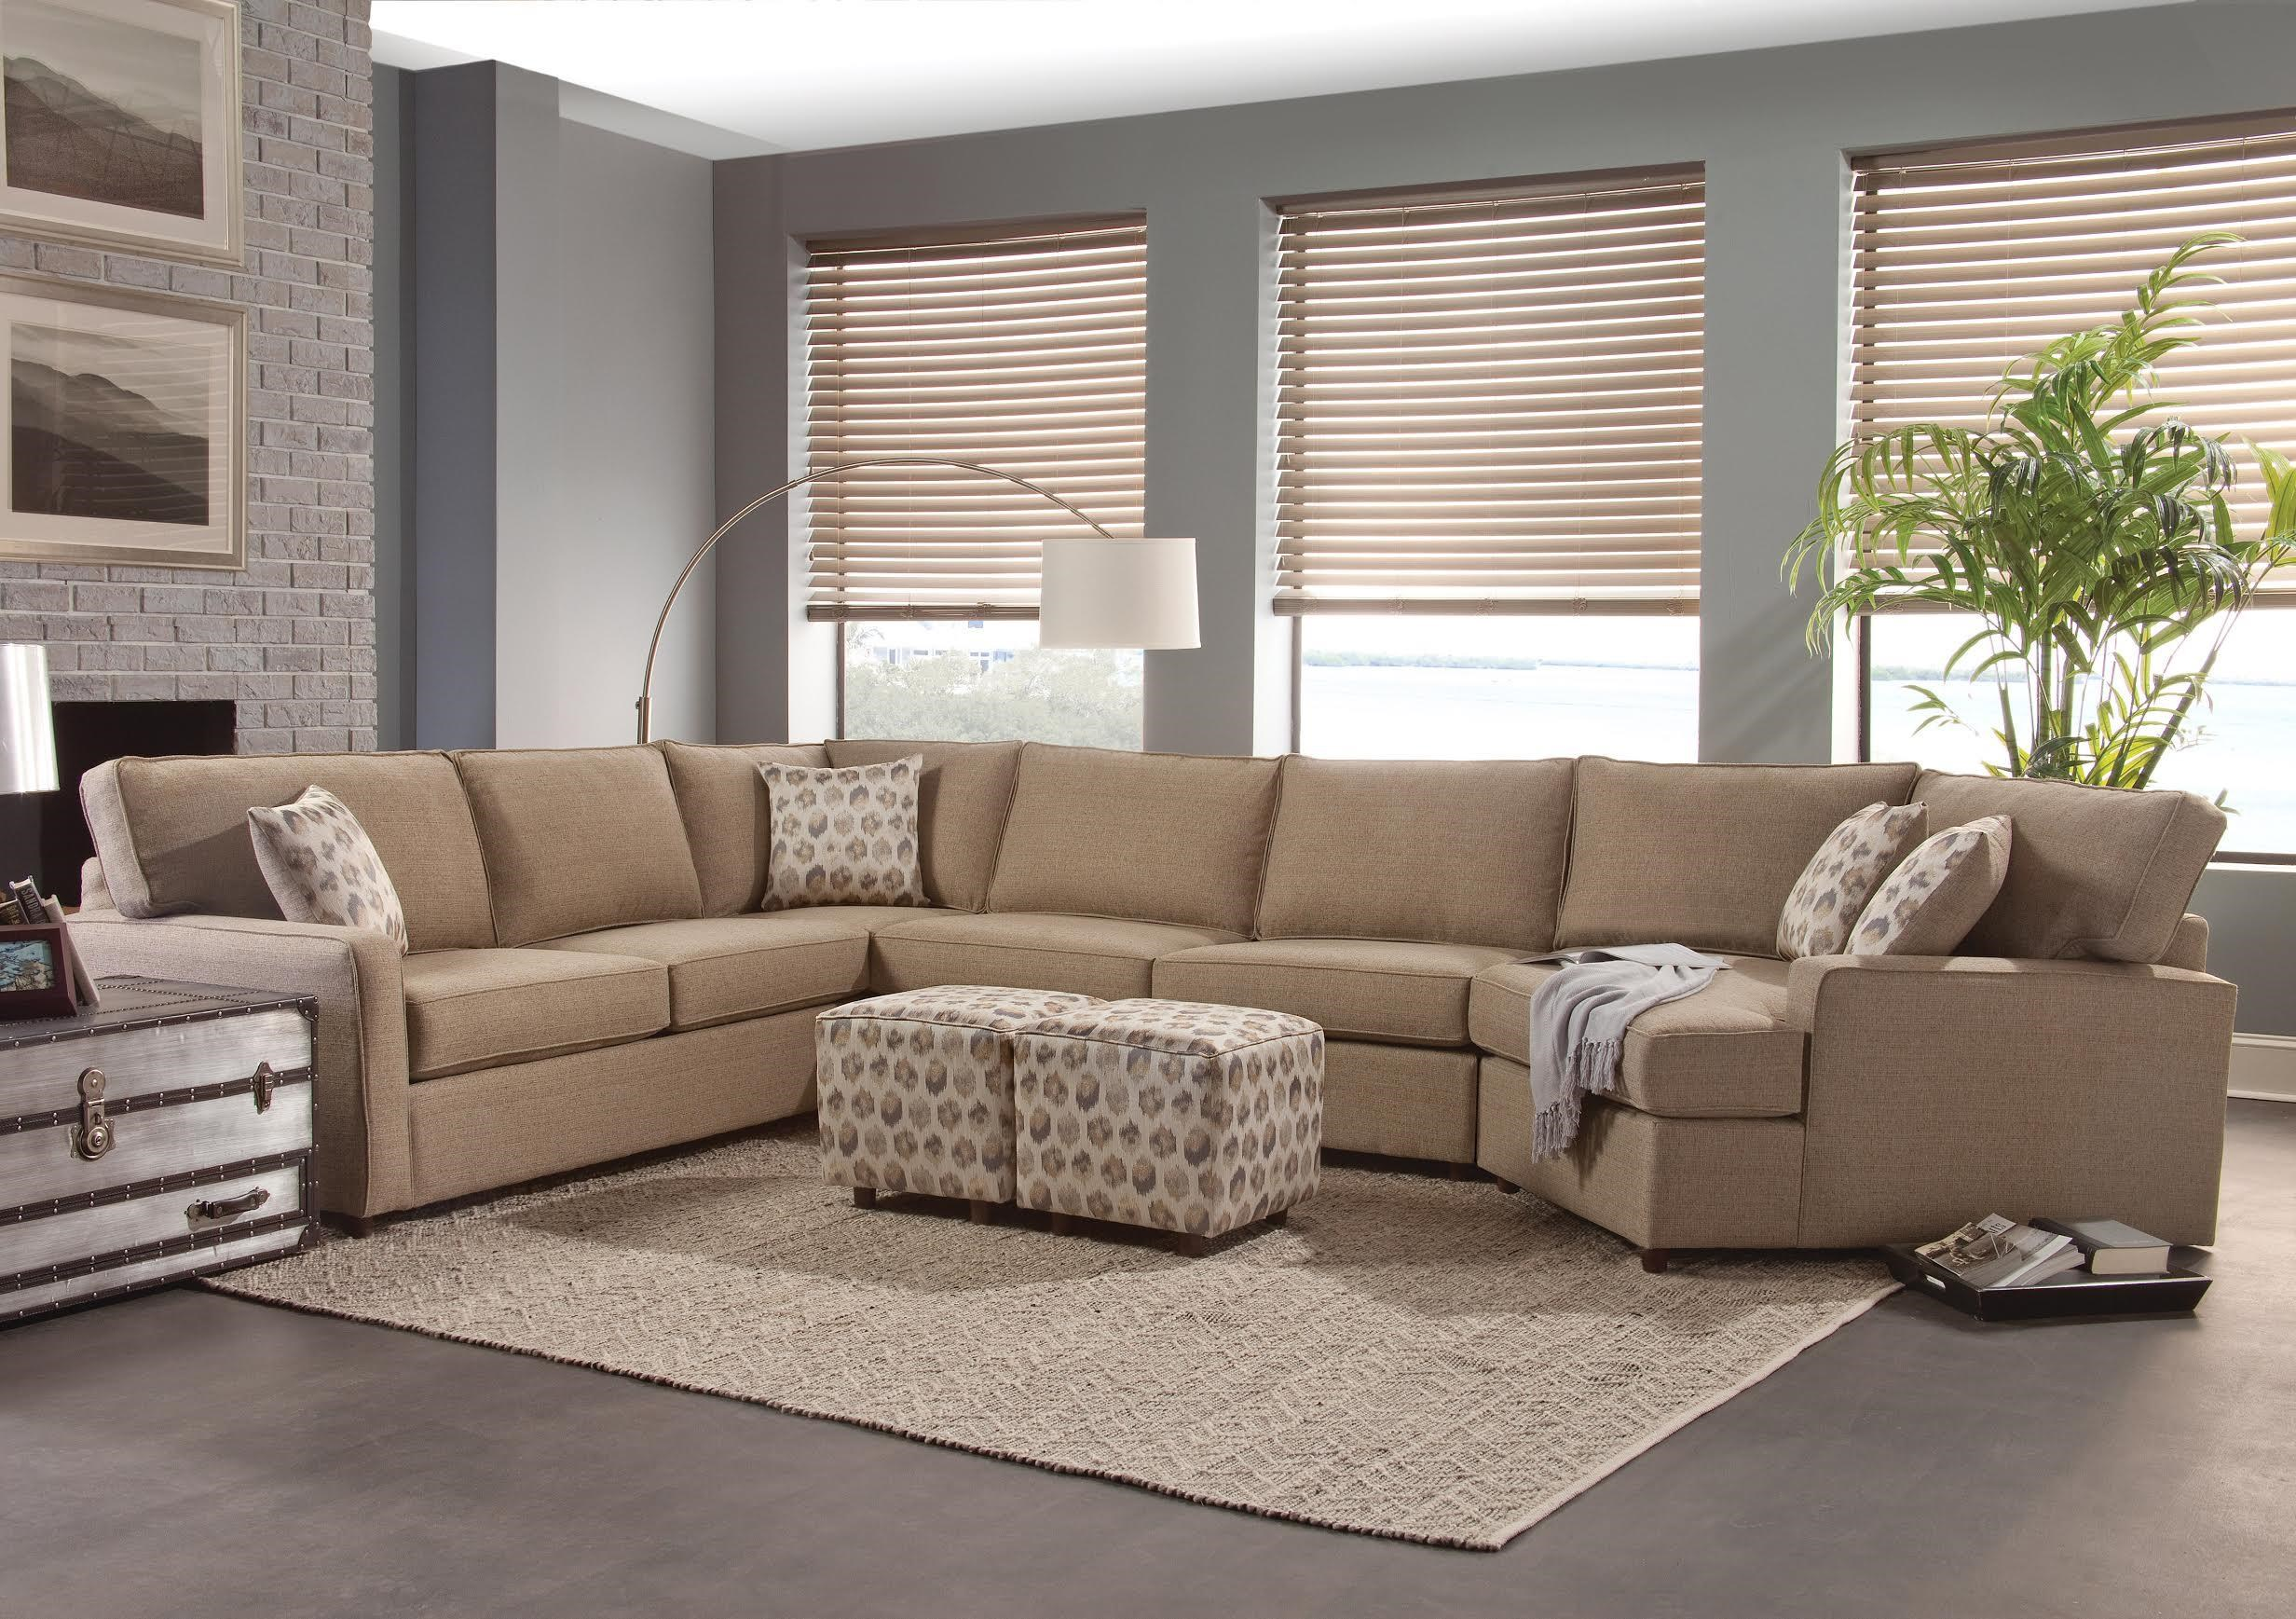 Microfiber Sectional Couch Popular Sectional Sofa With Ottoman 54